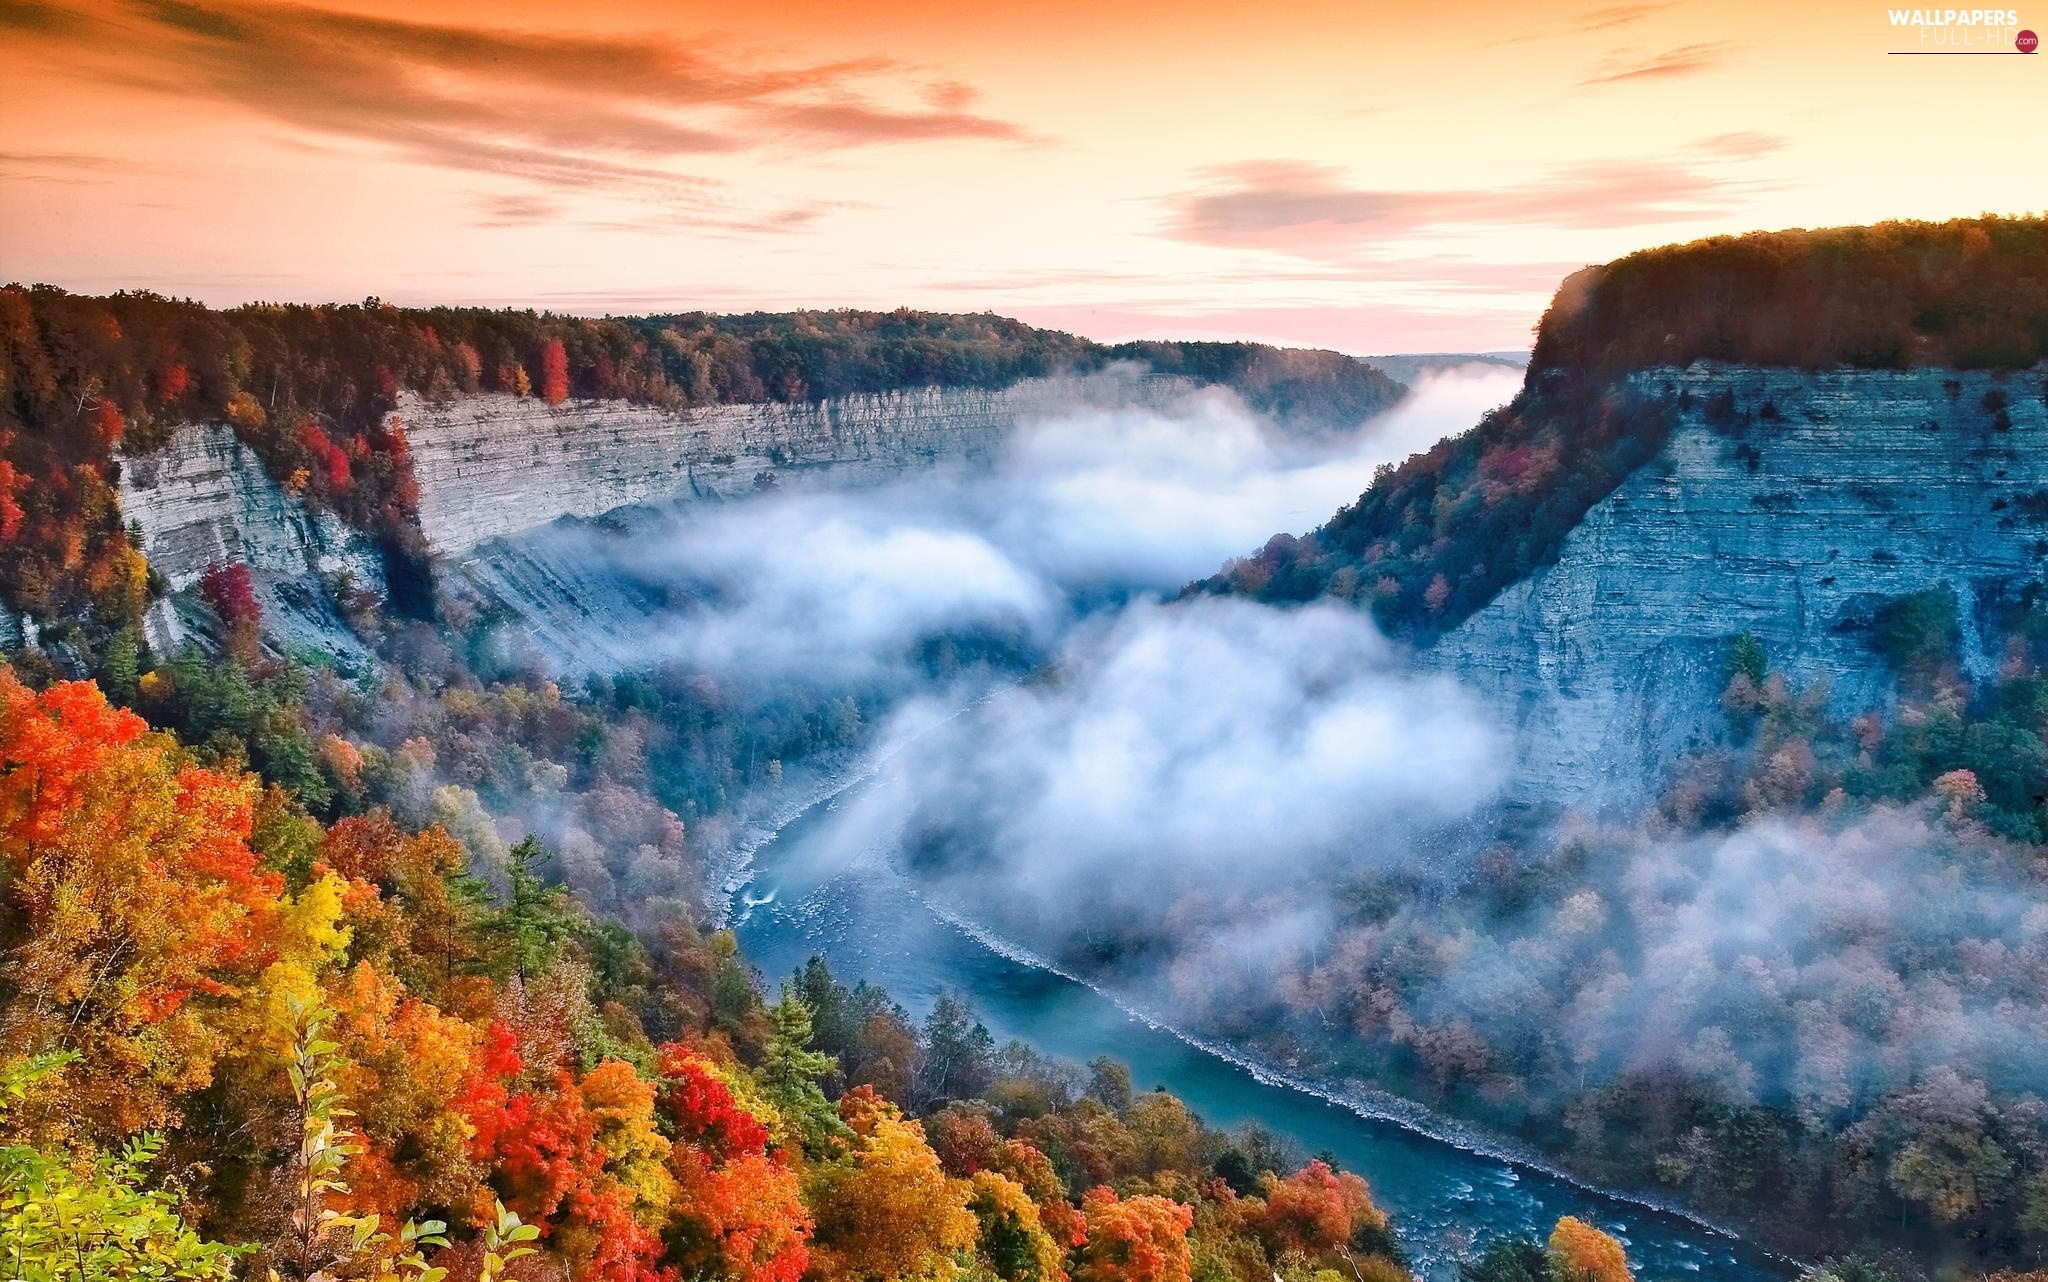 Cliffs, Fog, forest, River